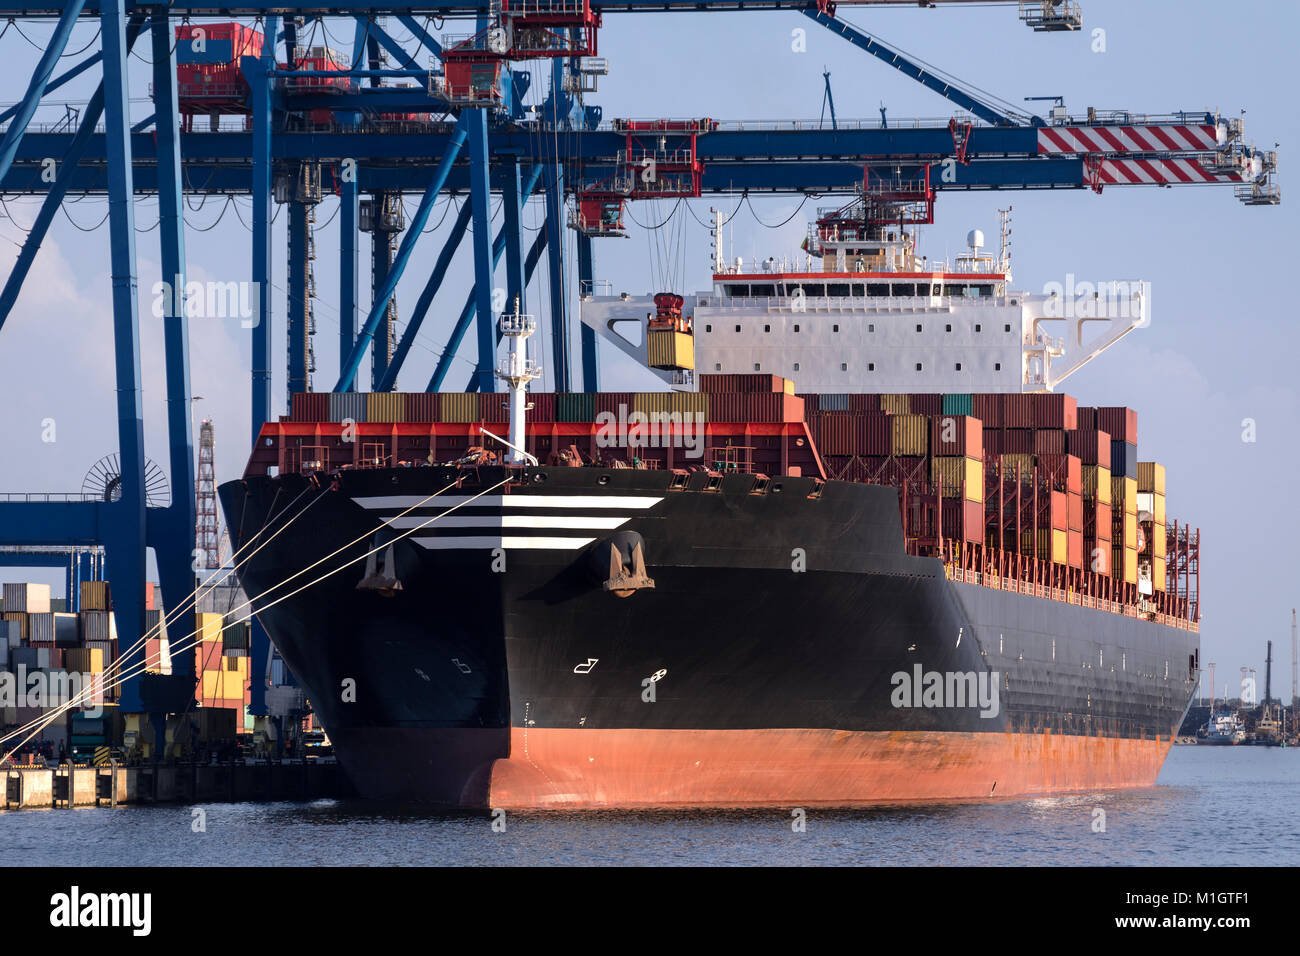 Shipping - Loading a large container ship in the port of Klaipeda in Lithuania. - Stock Image